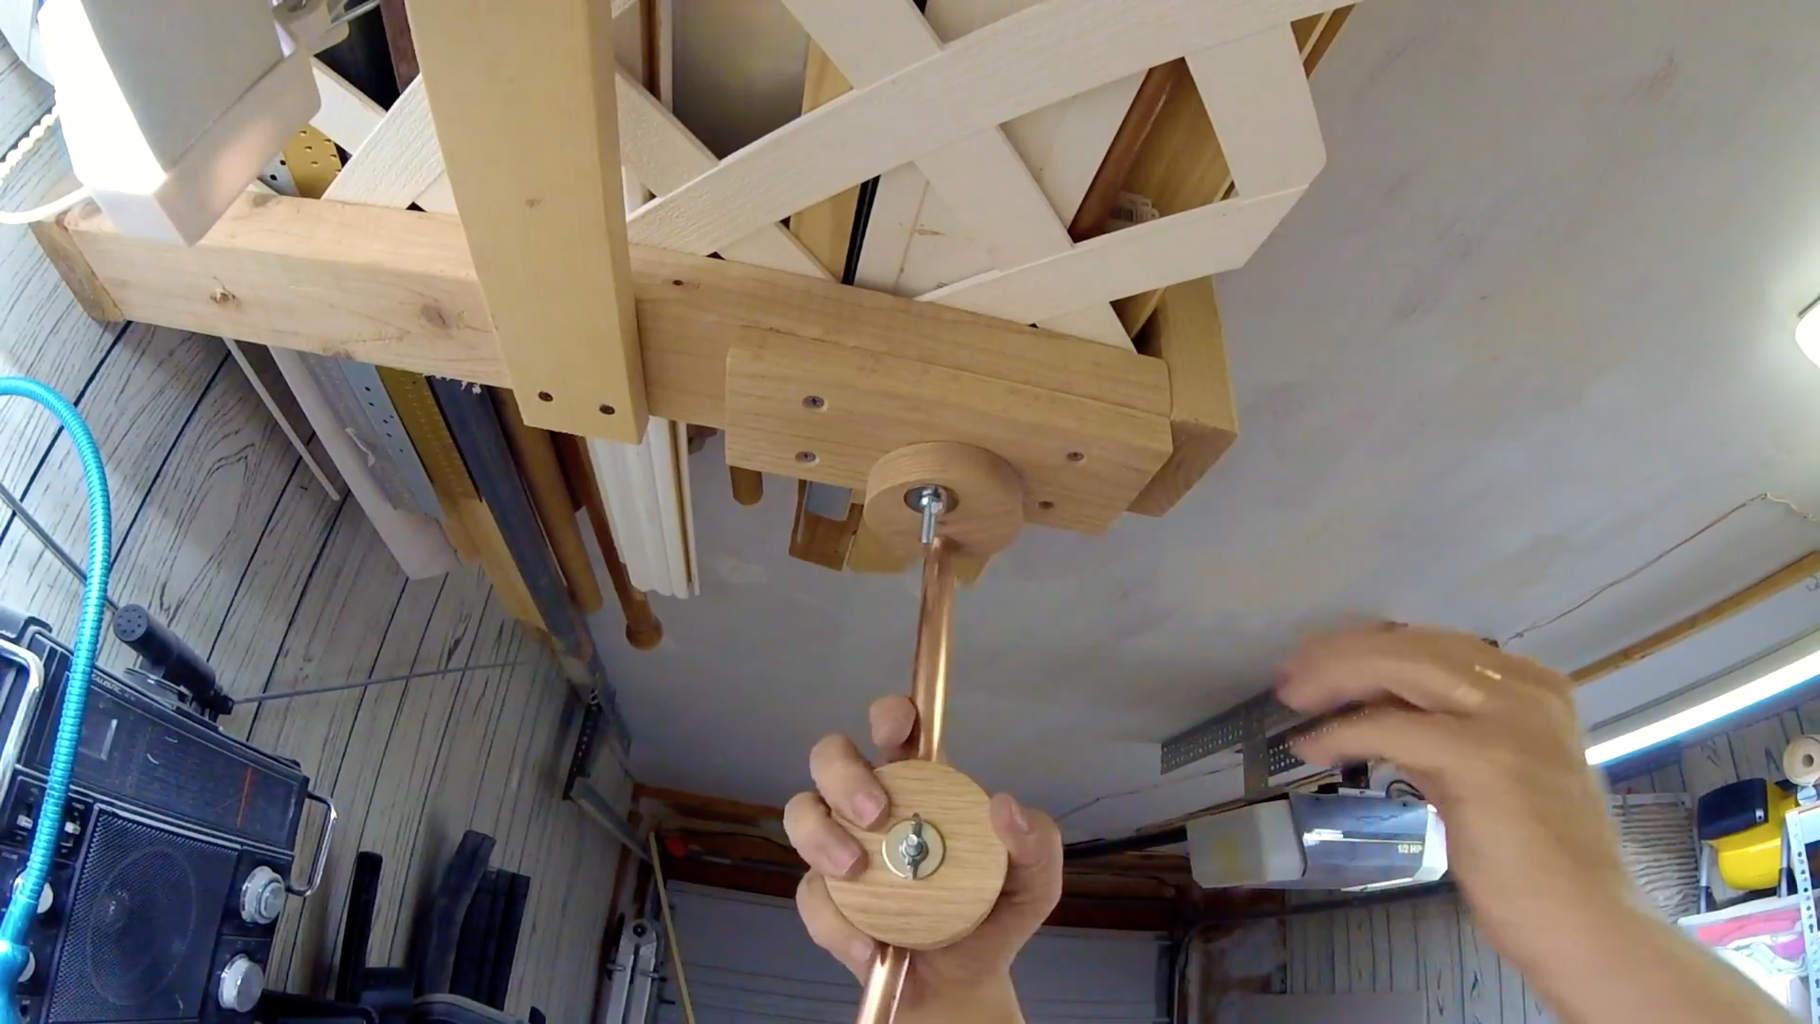 Attaching the Articulated Arm to the Ceiling